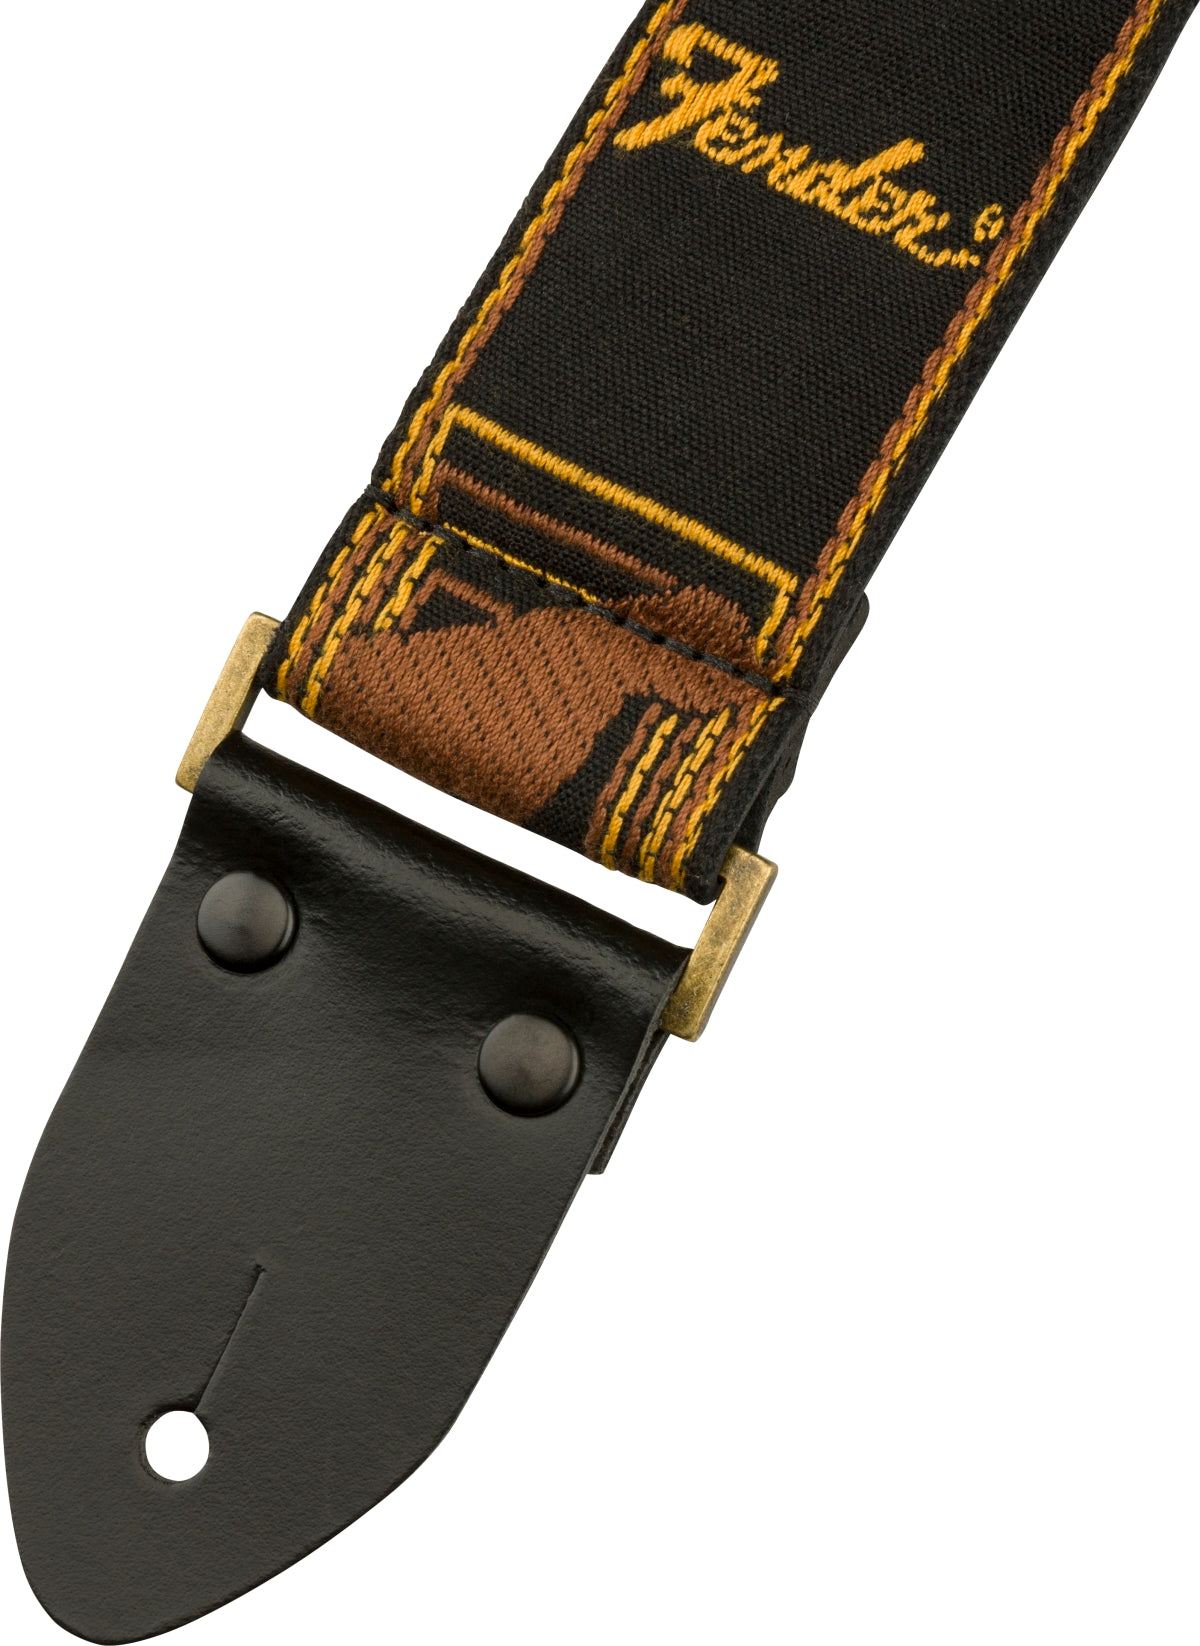 FENDER LEGACY MONOGRAM STRAP, BLACK/YELLOW/BROWN